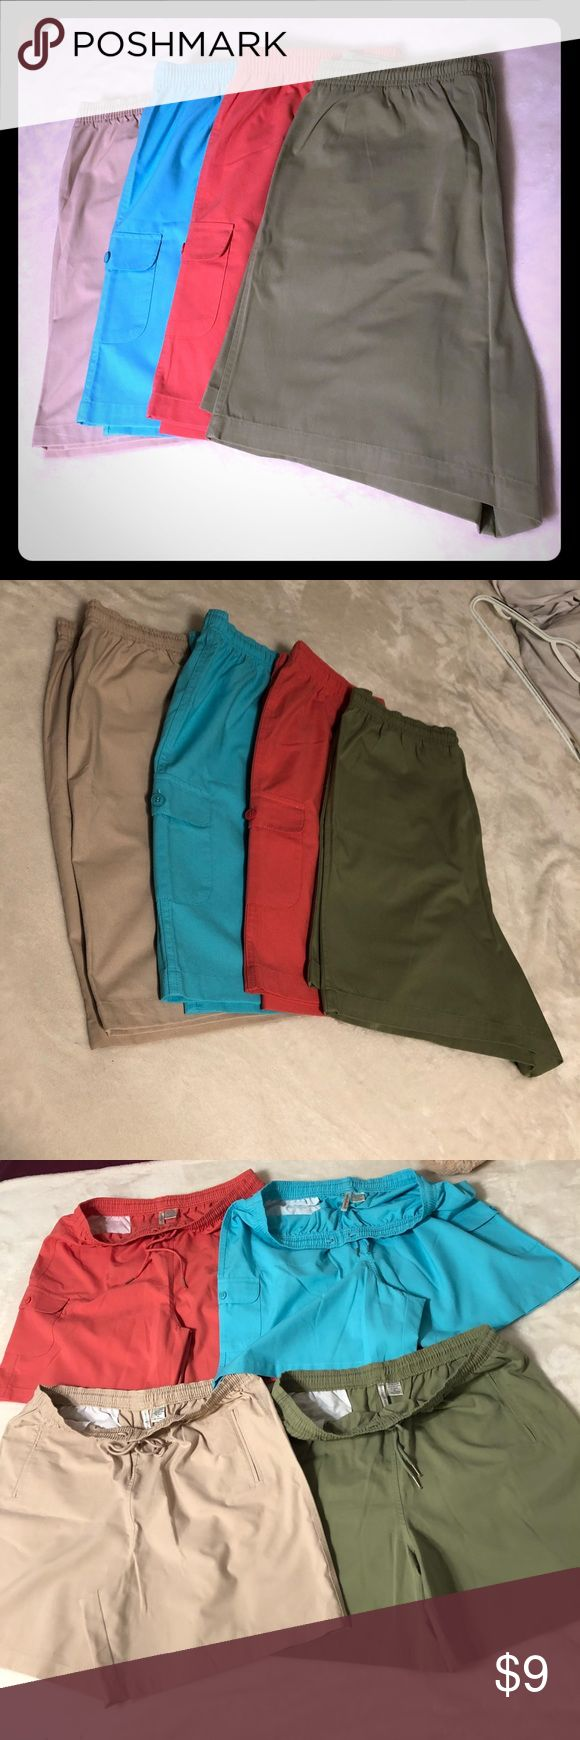 (BUNDLE x4) Shorts Excellent used condition bundle of 4 pairs of beige, coral, green and light blue women's shorts by Hastings & Smith. Size XL and fit true to size with an elastic waistband and drawstring. Perfect spring shorts to be worn with neutral sandals! Length: 19 inches  Accepting offers💕 Hastings & Smith Shorts Cargos